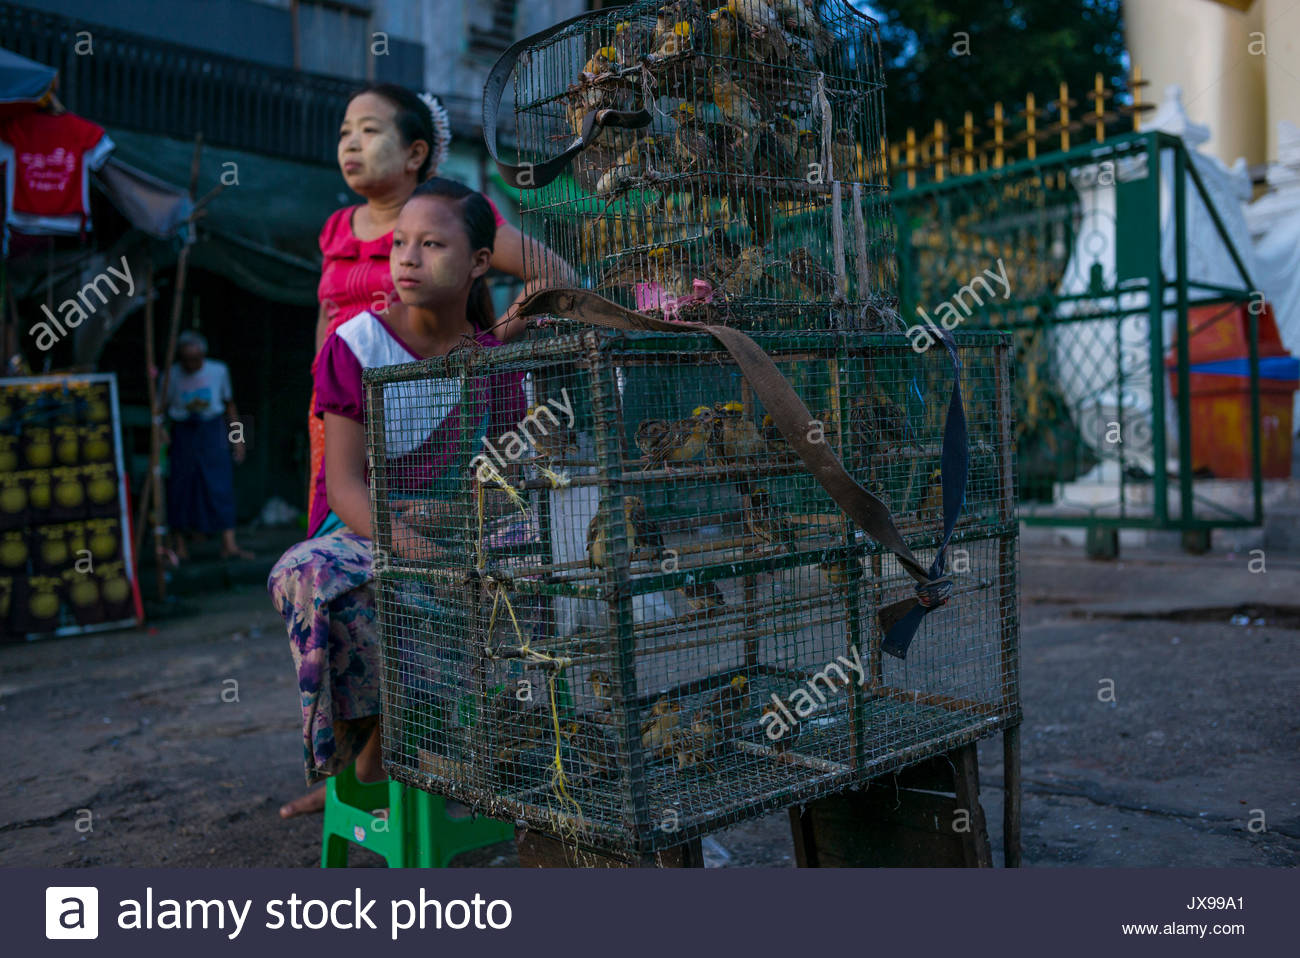 Street vendors sit beside a cage of birds they are selling. - Stock Image